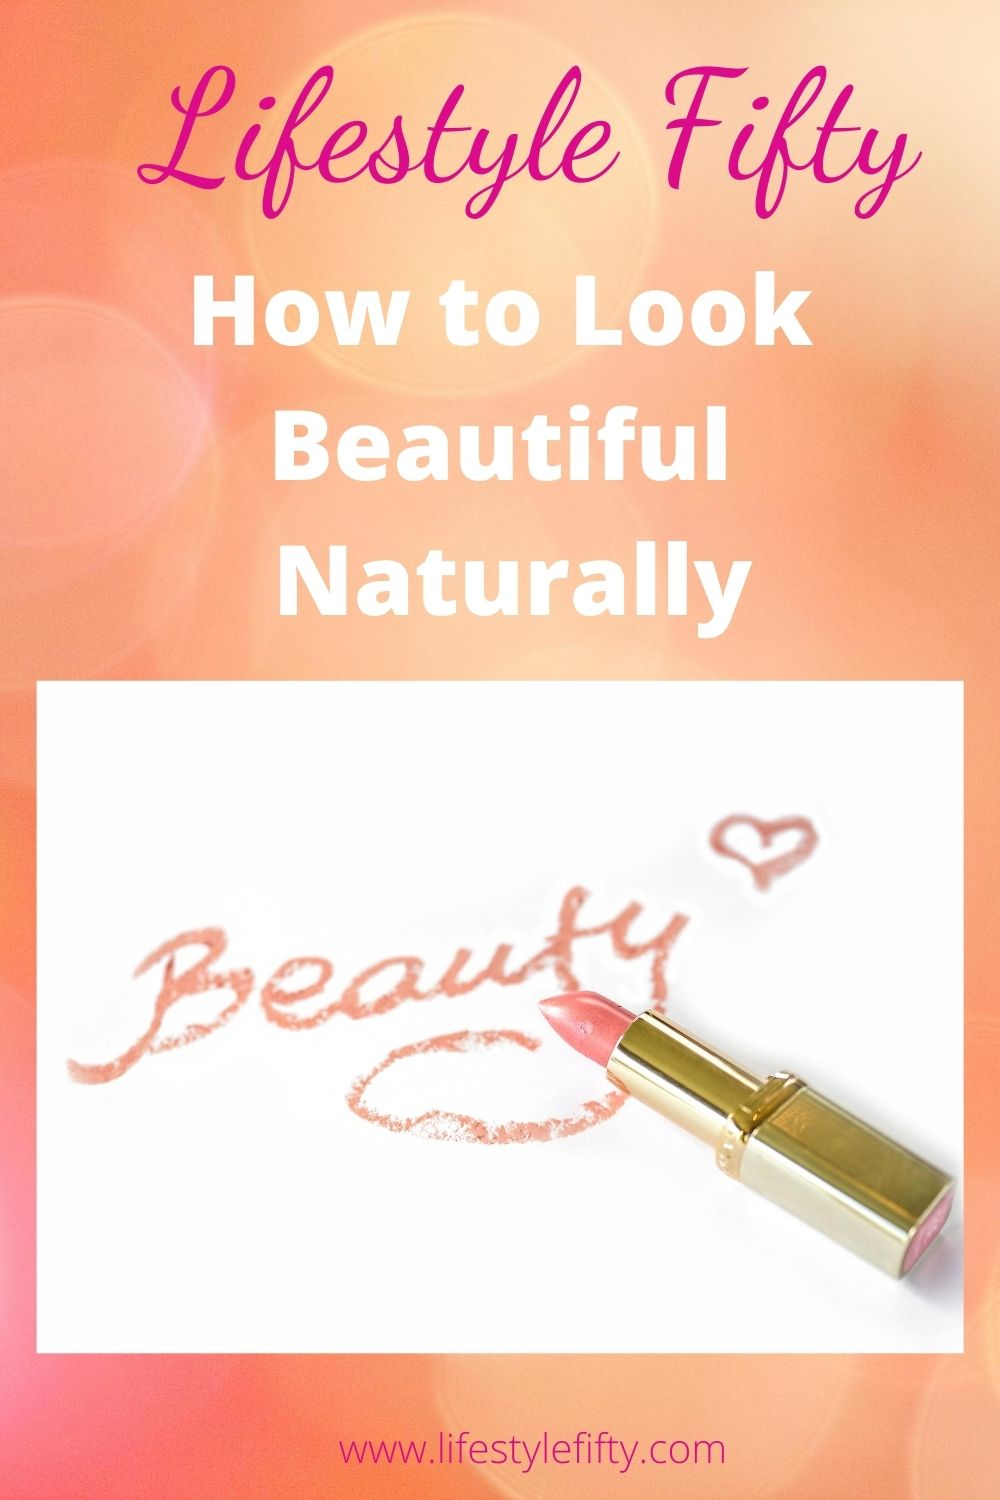 How to look beautiful naturally, text over image with lipstick